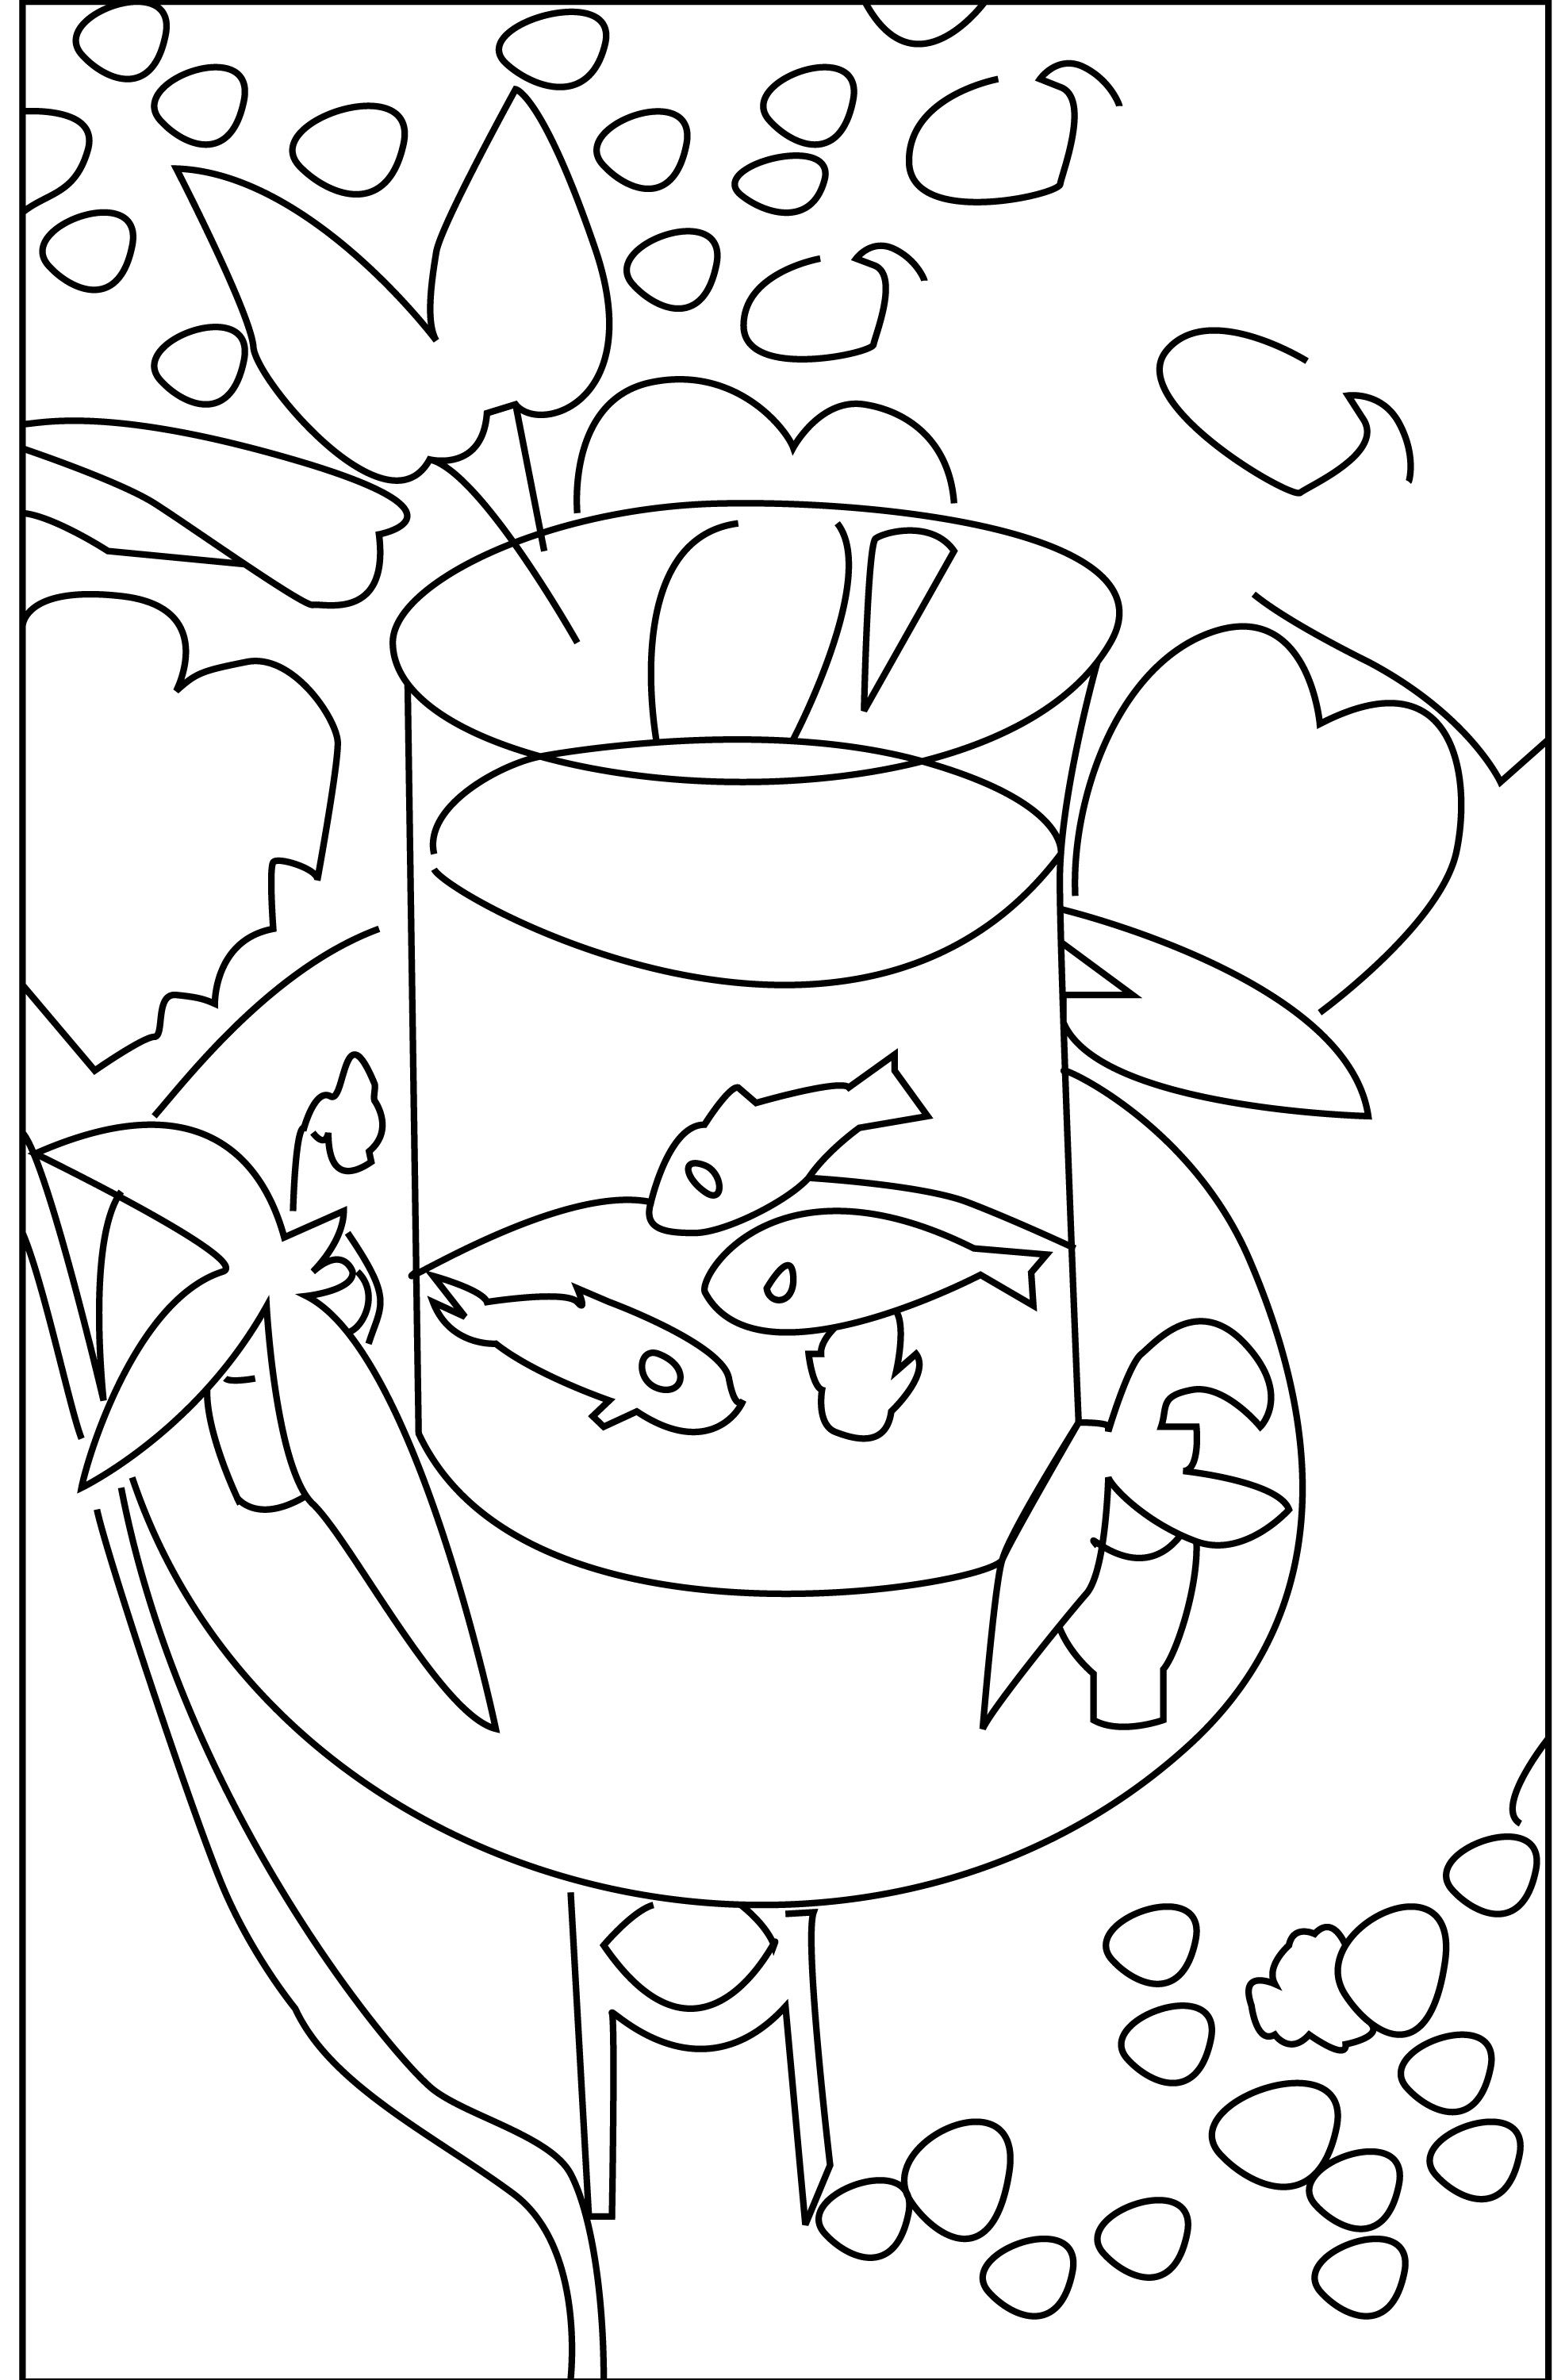 colouring pages van : Coloring Book Matisse S Gold Fish